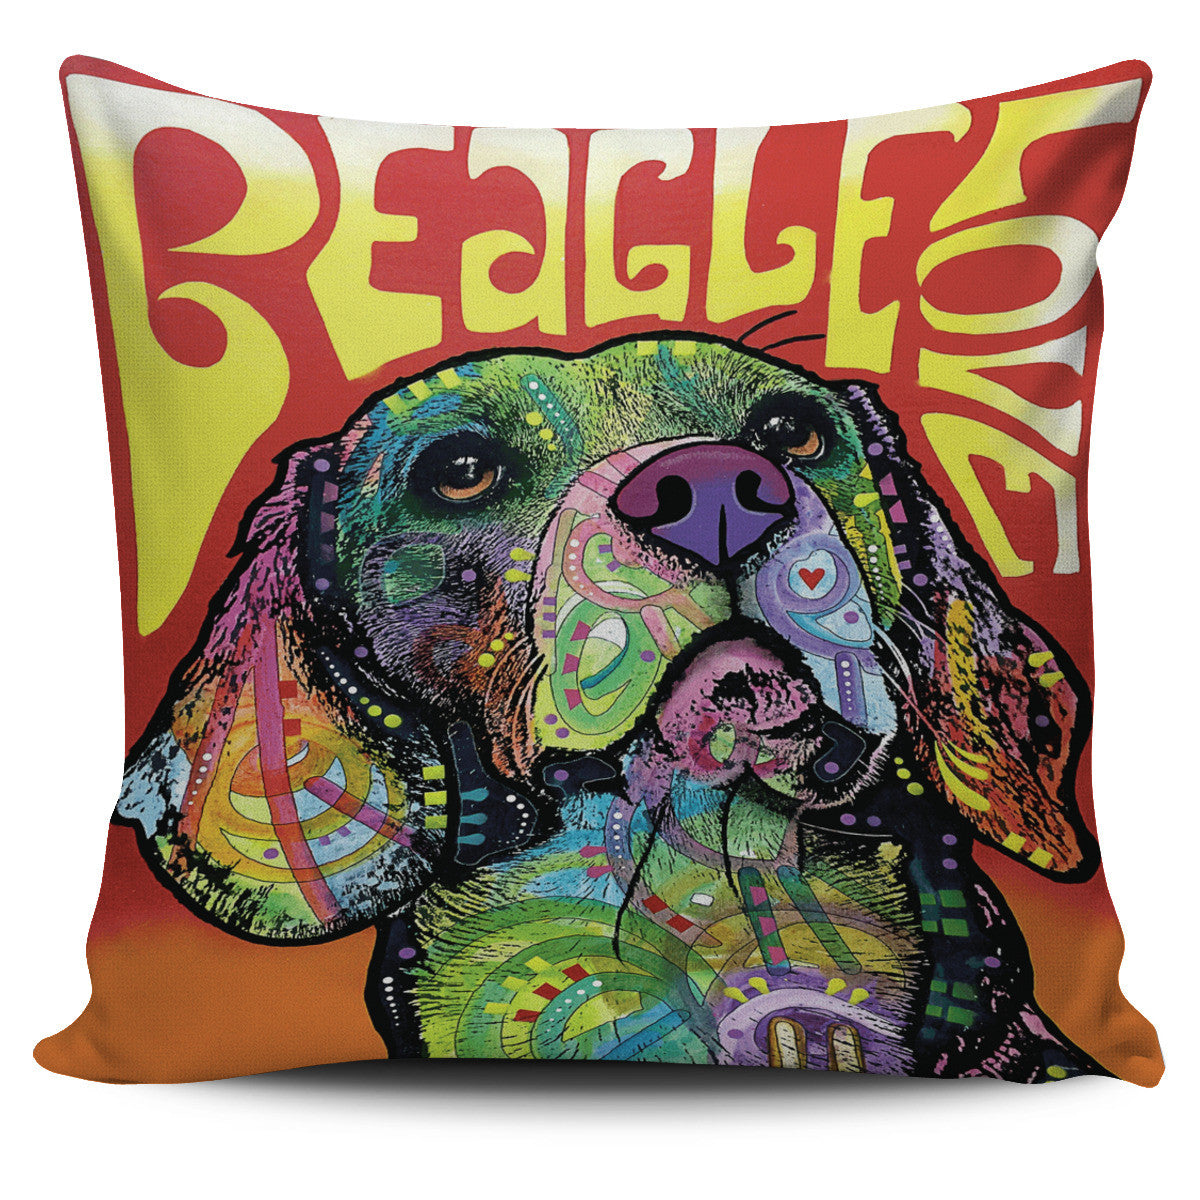 Beagle Love Pillow Covers Offer